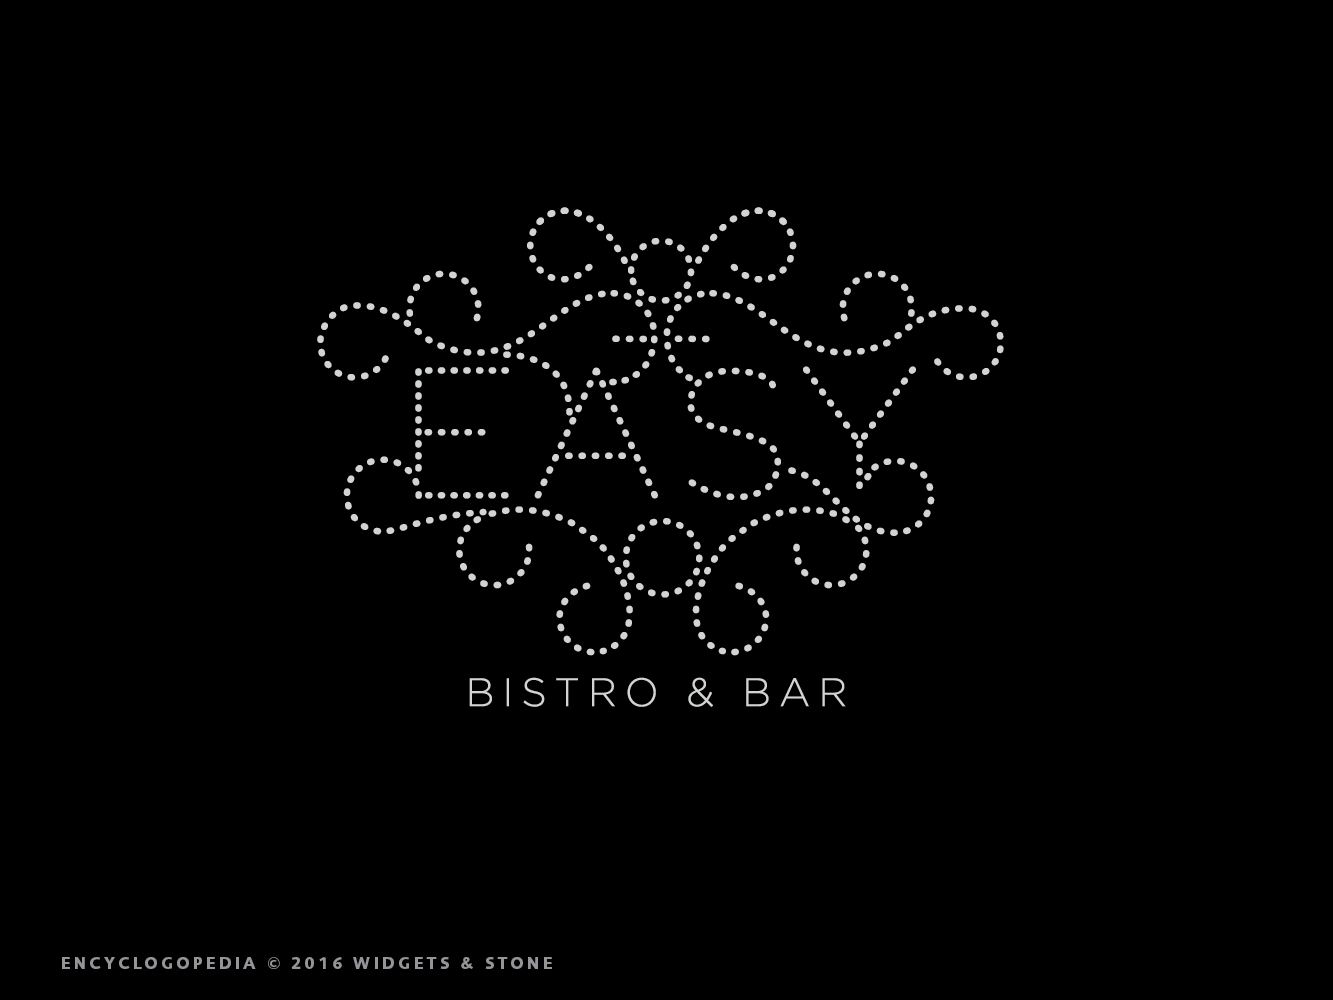 Copy of Easy Bistro and Bar (Chattanooga, TN) logo design and brand identity